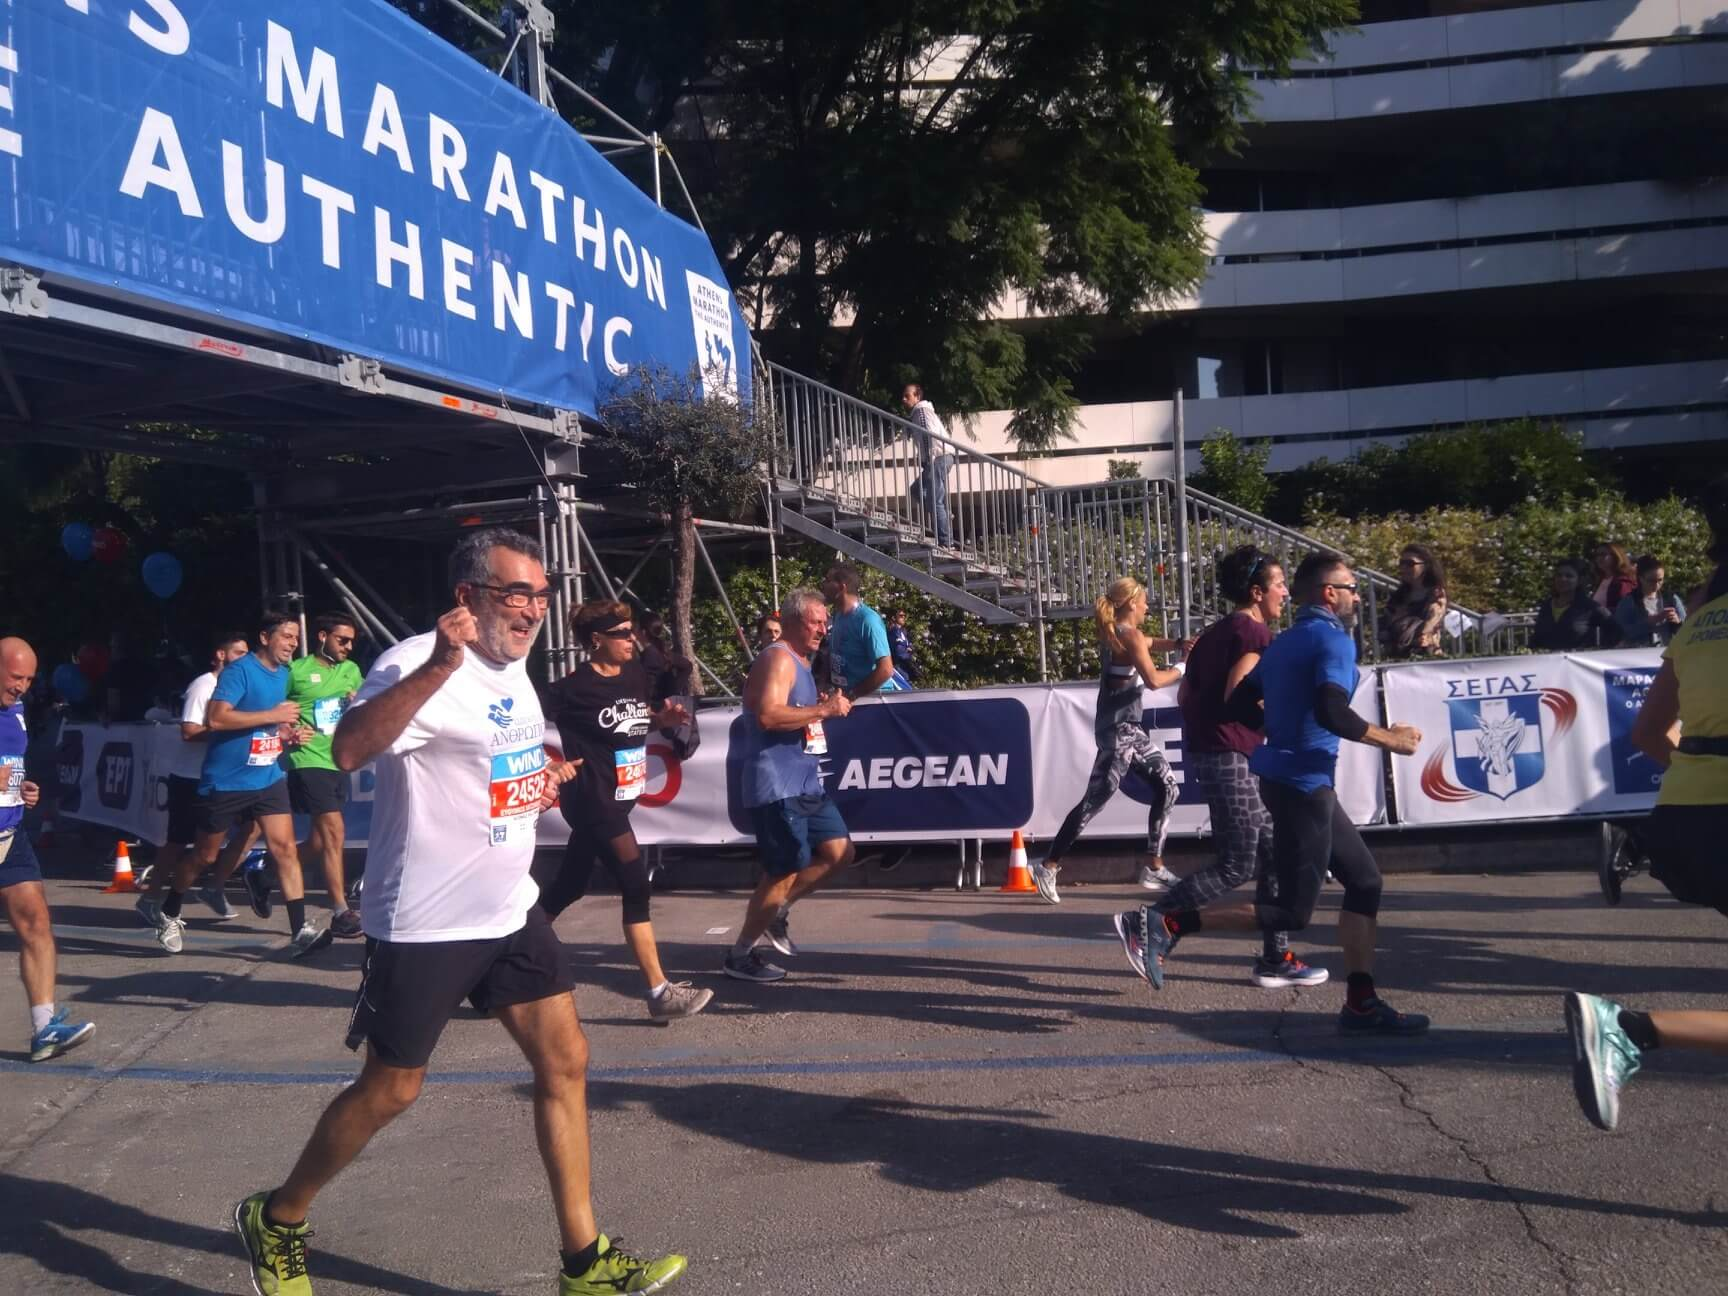 Our volunteers participate in the Athens Classic Marathon